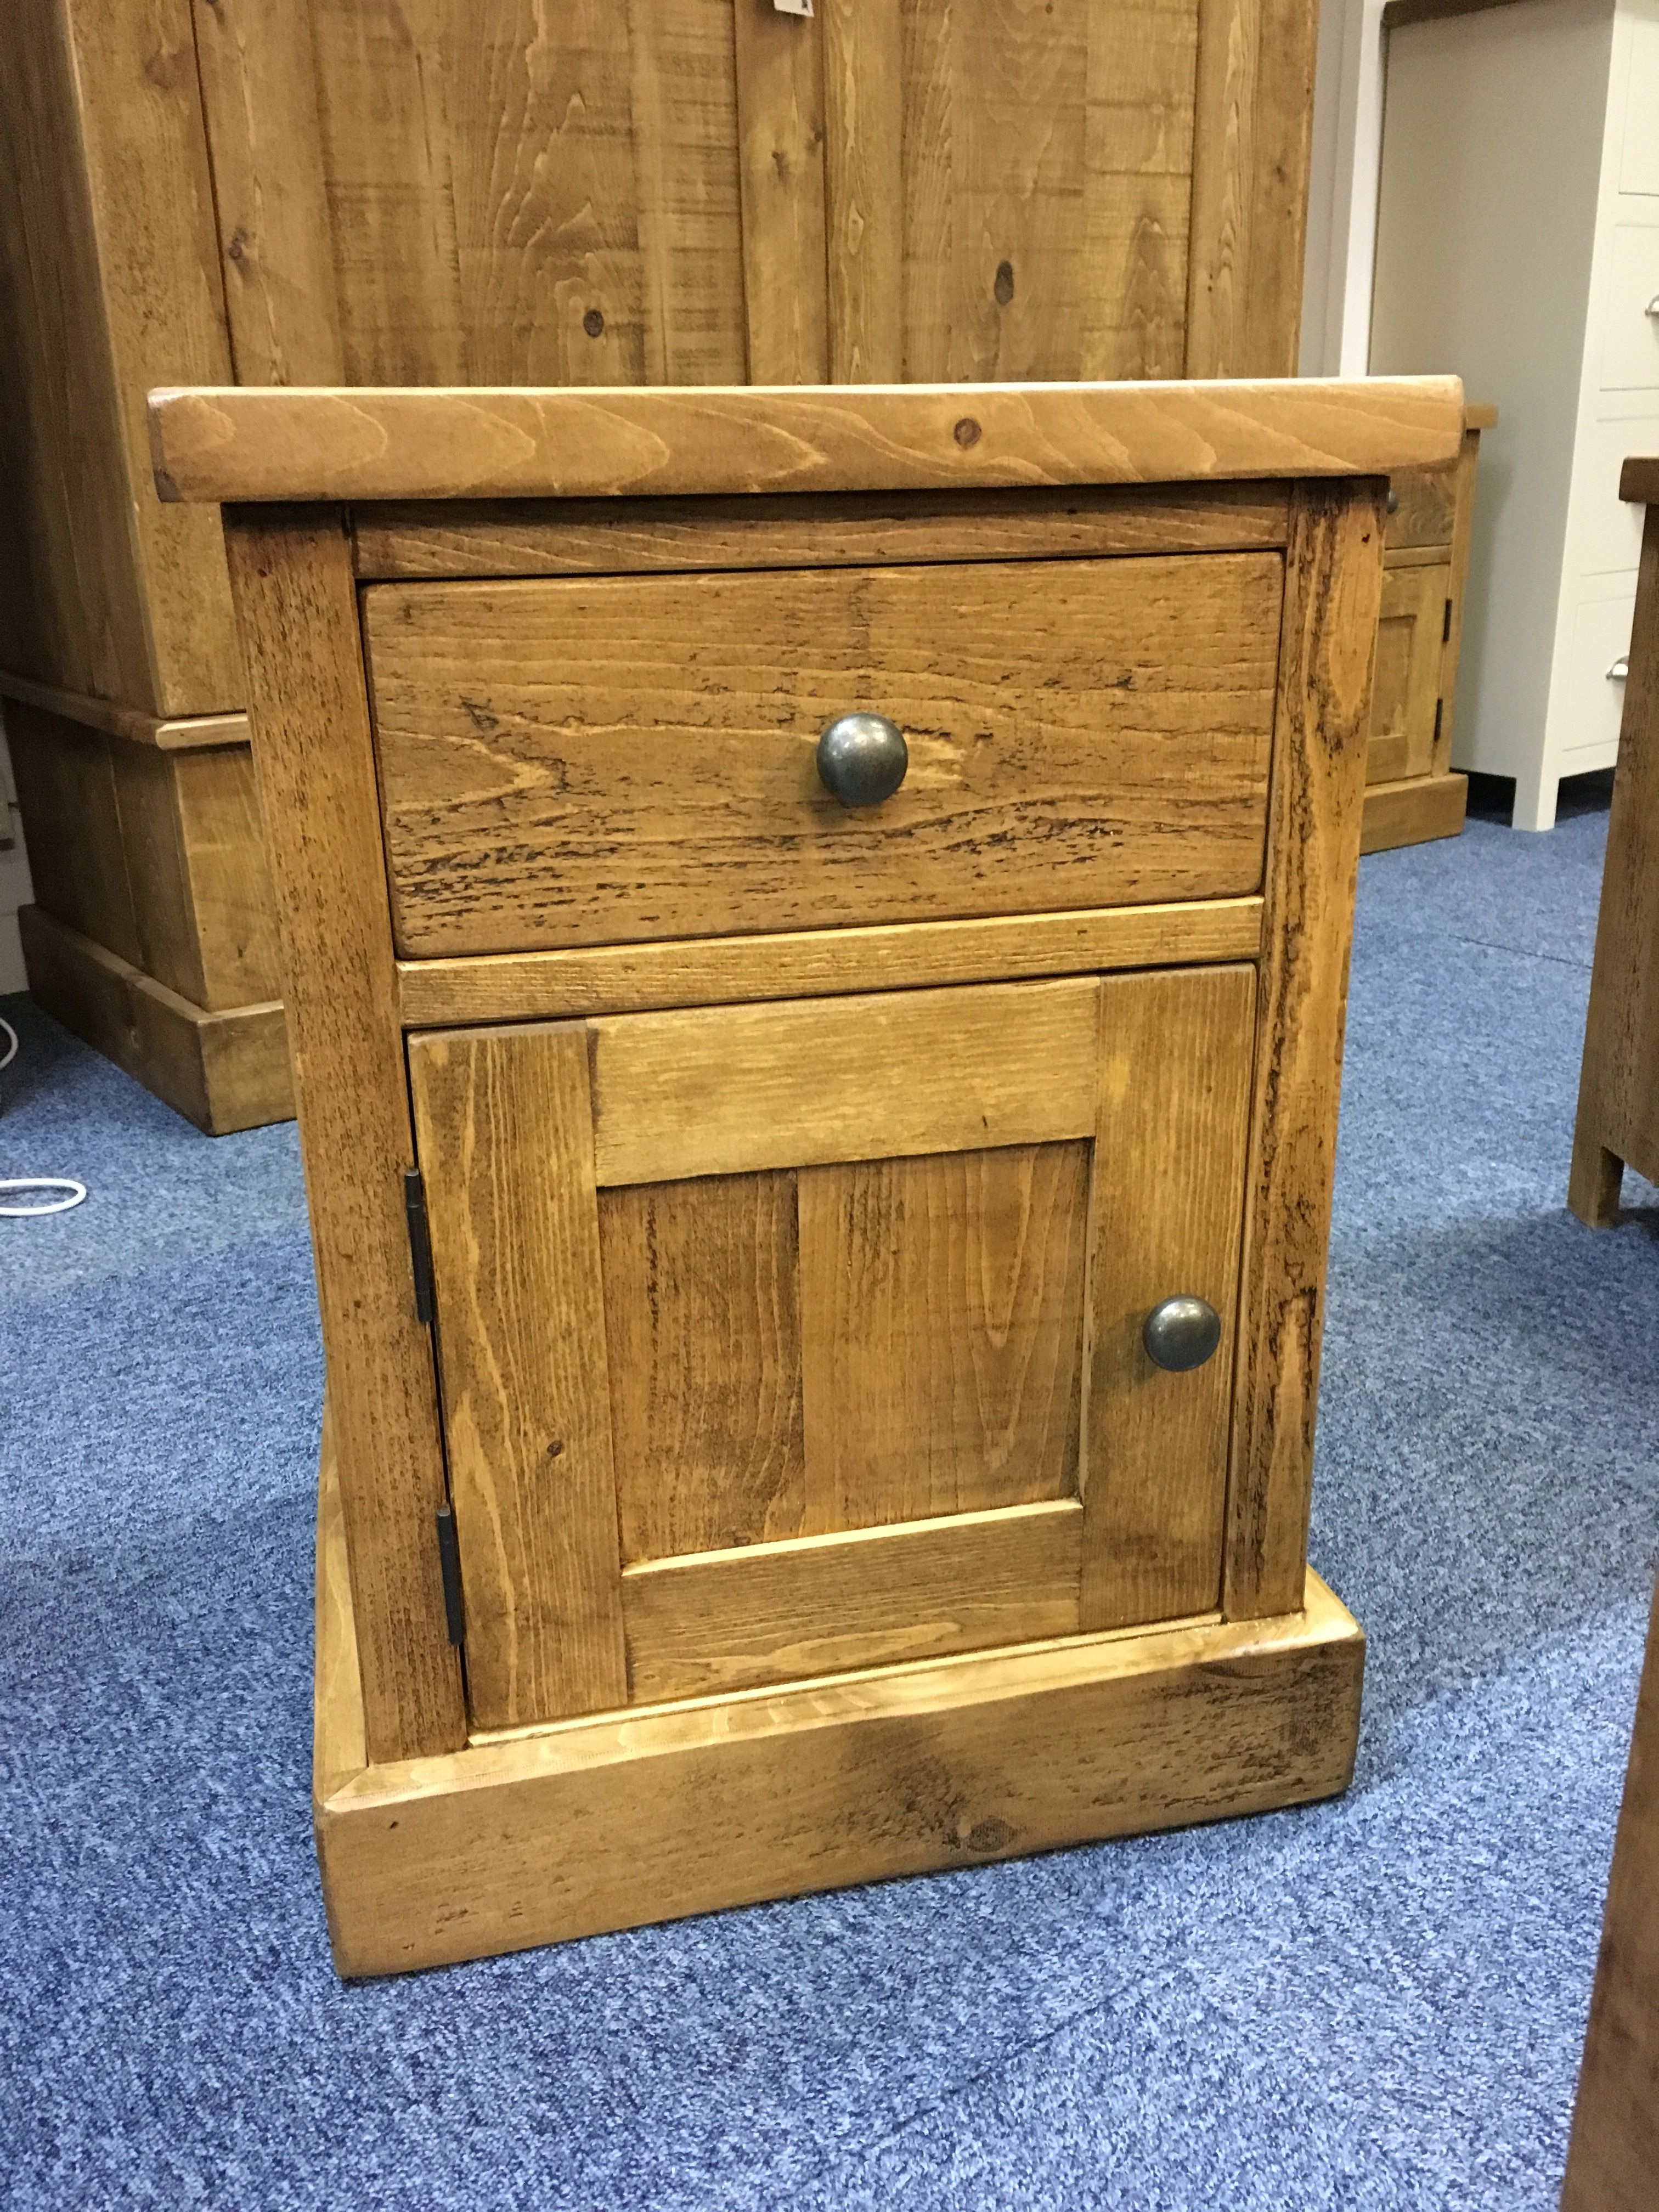 1 Door, 1 Drawer Rustic Plank Bedside. CAN BE MADE ANY SIZE! Cobwebs